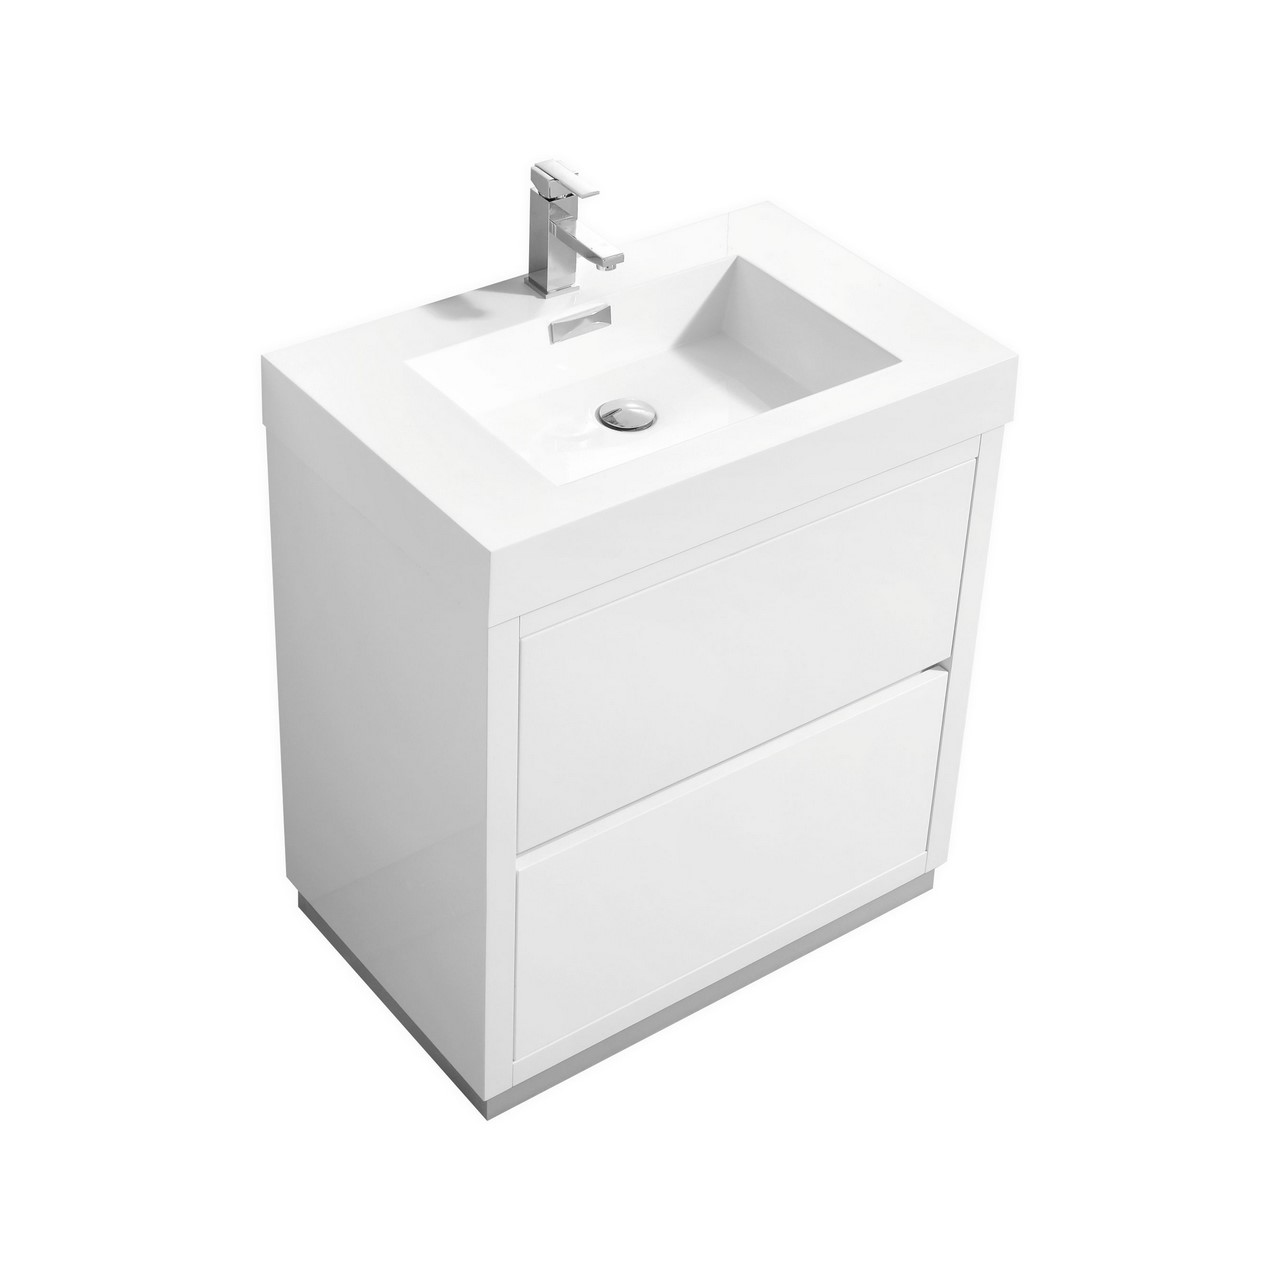 "Modern Lux 30"" High Gloss White Free Standing Modern Bathroom Vanity"